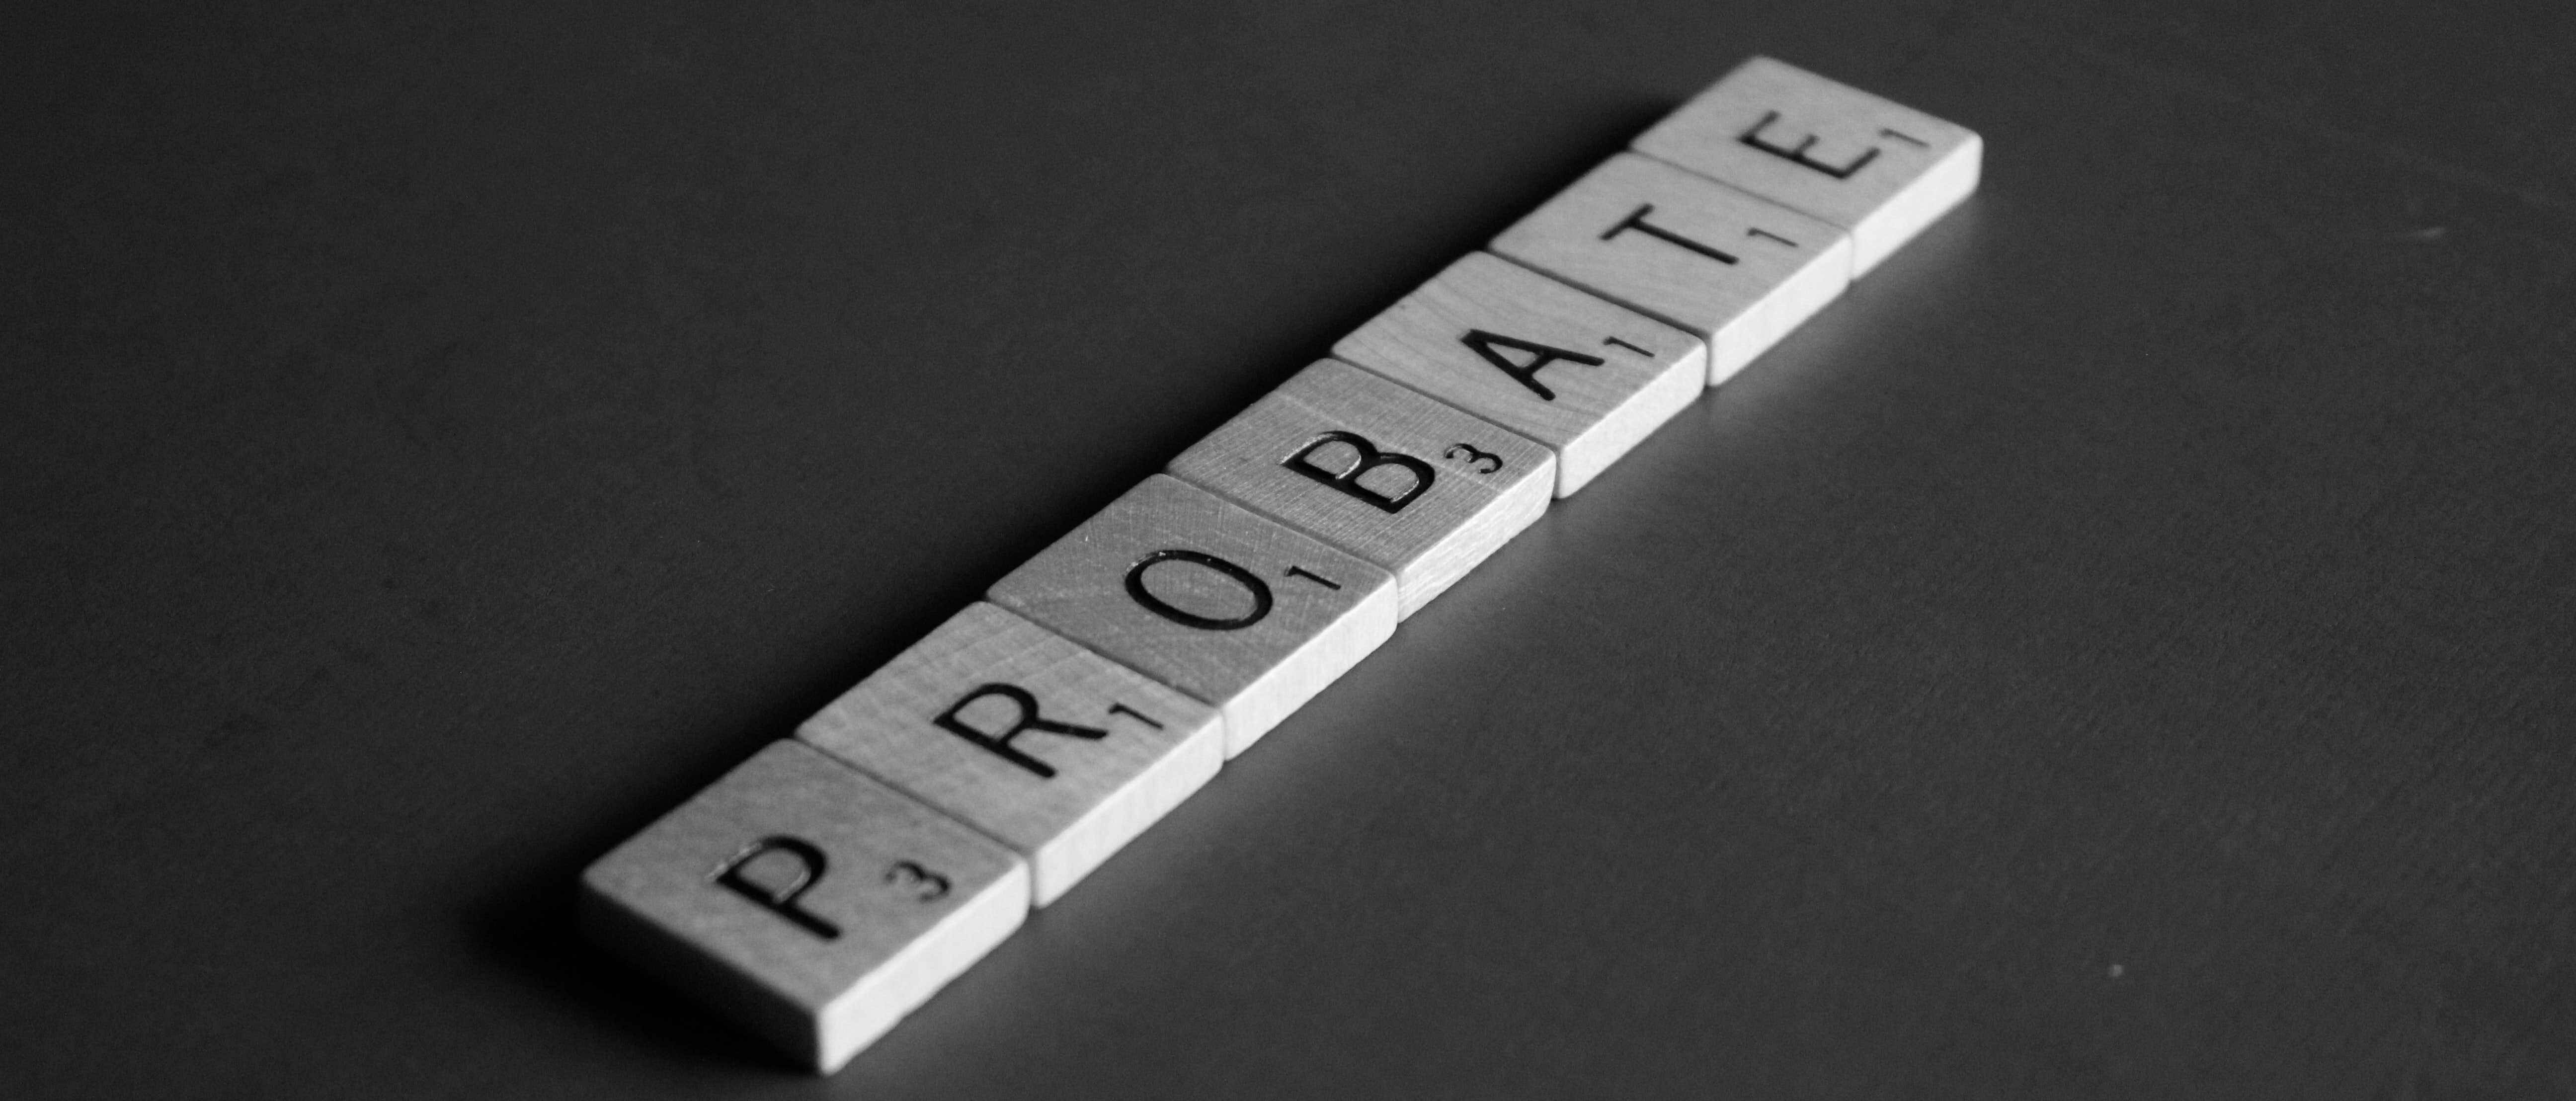 Selling House in Probate in Charlotte - Sell Charlotte Home Fast LLC